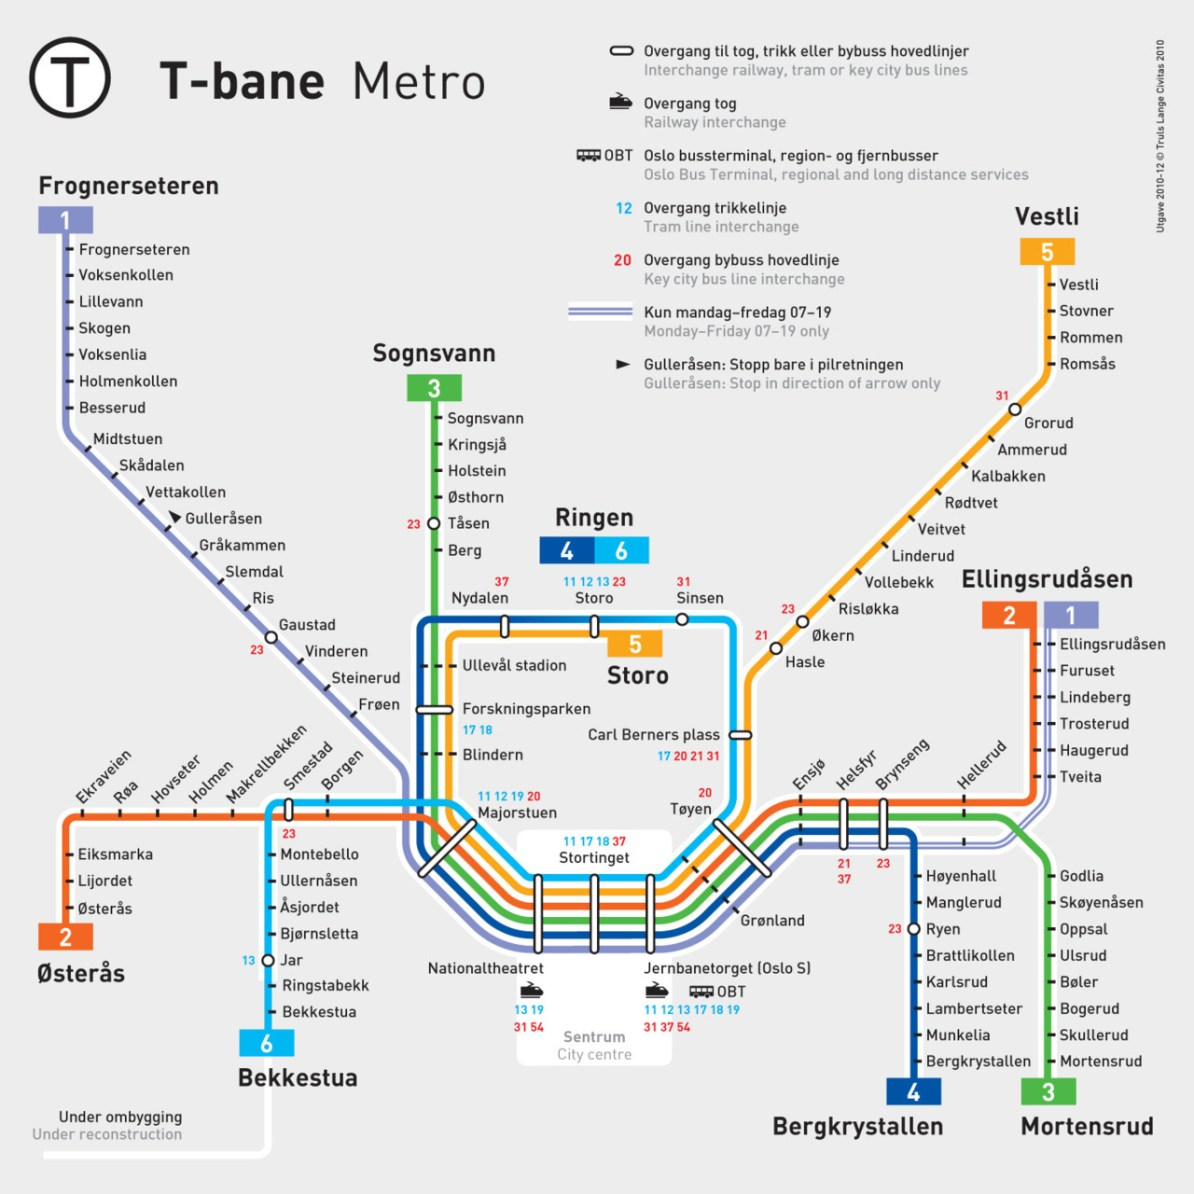 Budapest Subway Map English.Transit Maps Official Map Oslo T Bane Metro System 2011